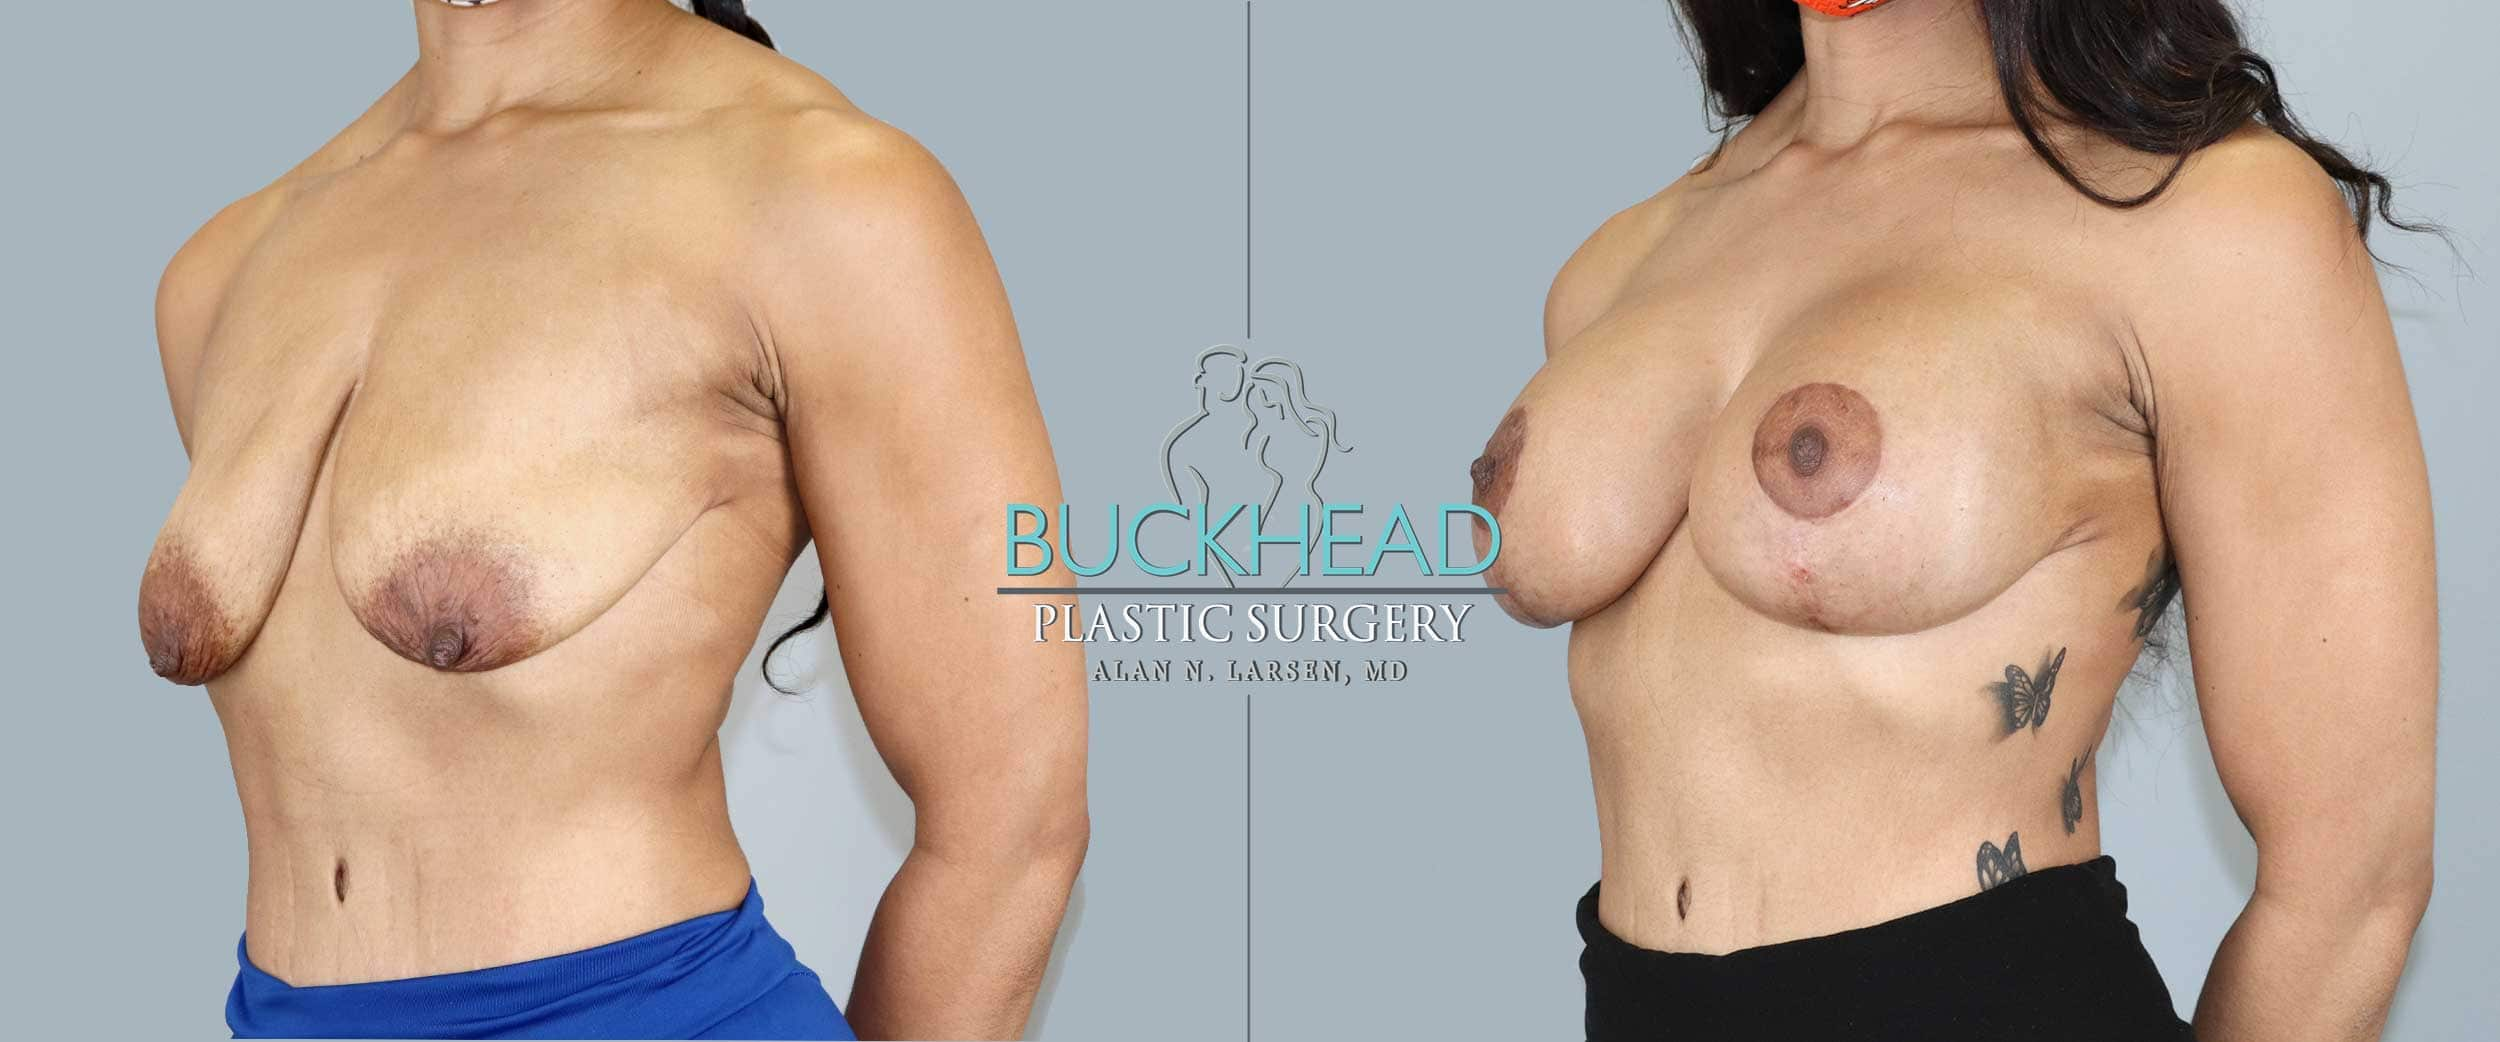 Before and After Photo Gallery | Breast Lift with Augmentation | Buckhead Plastic Surgery | Alan N. Larsen, MD | Board-Certified Plastic Surgeon | Atlanta GA